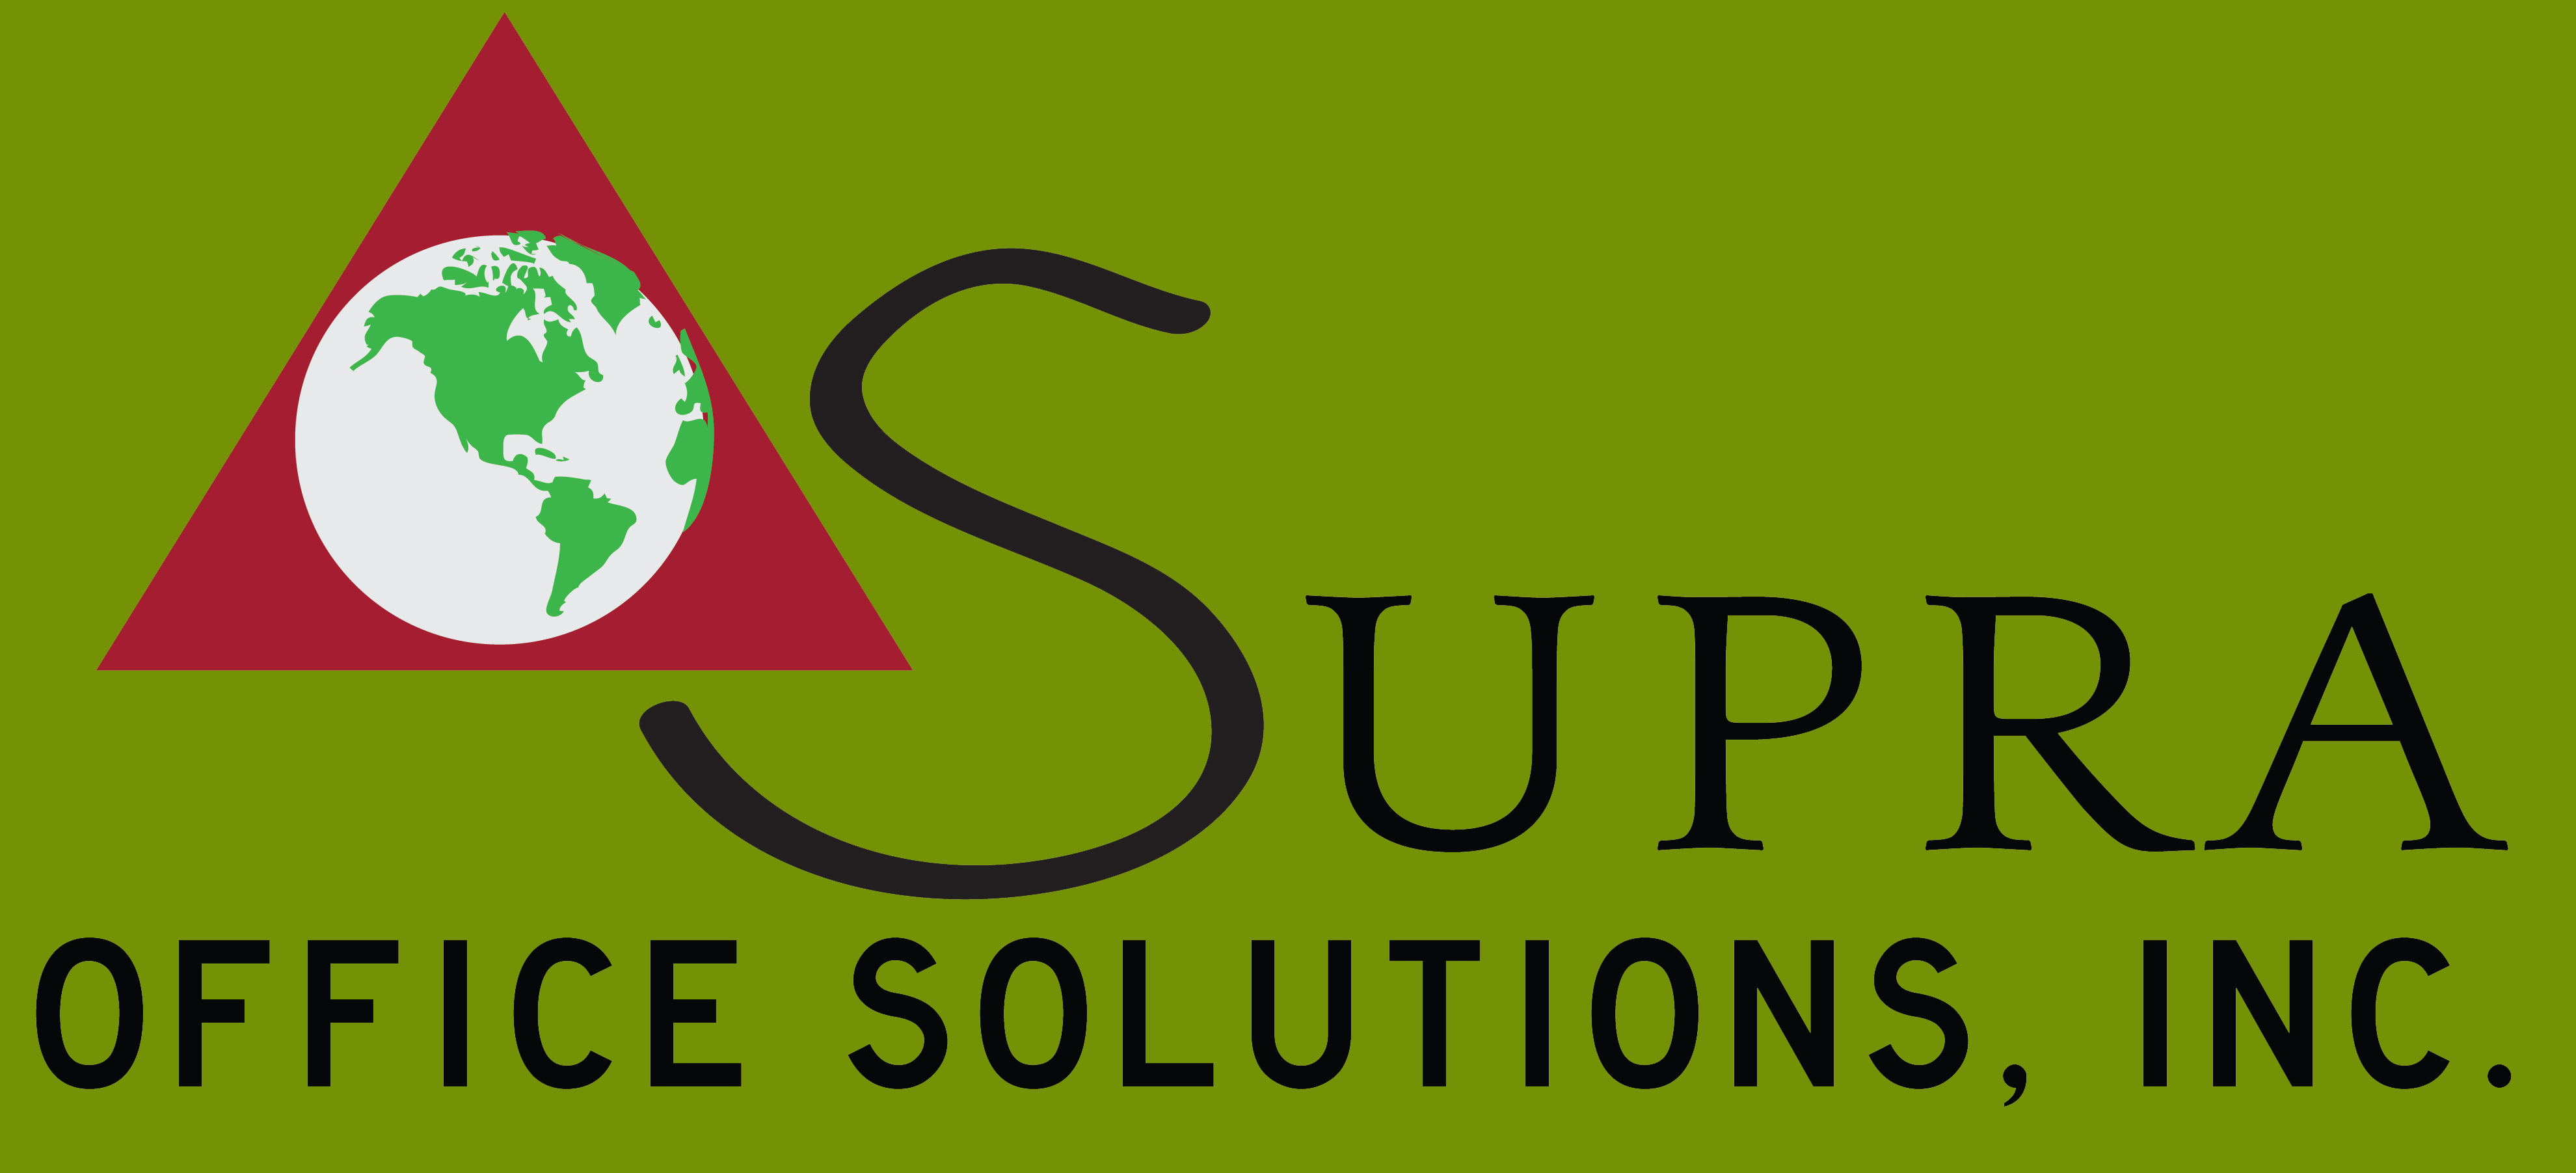 supra office solutions logo